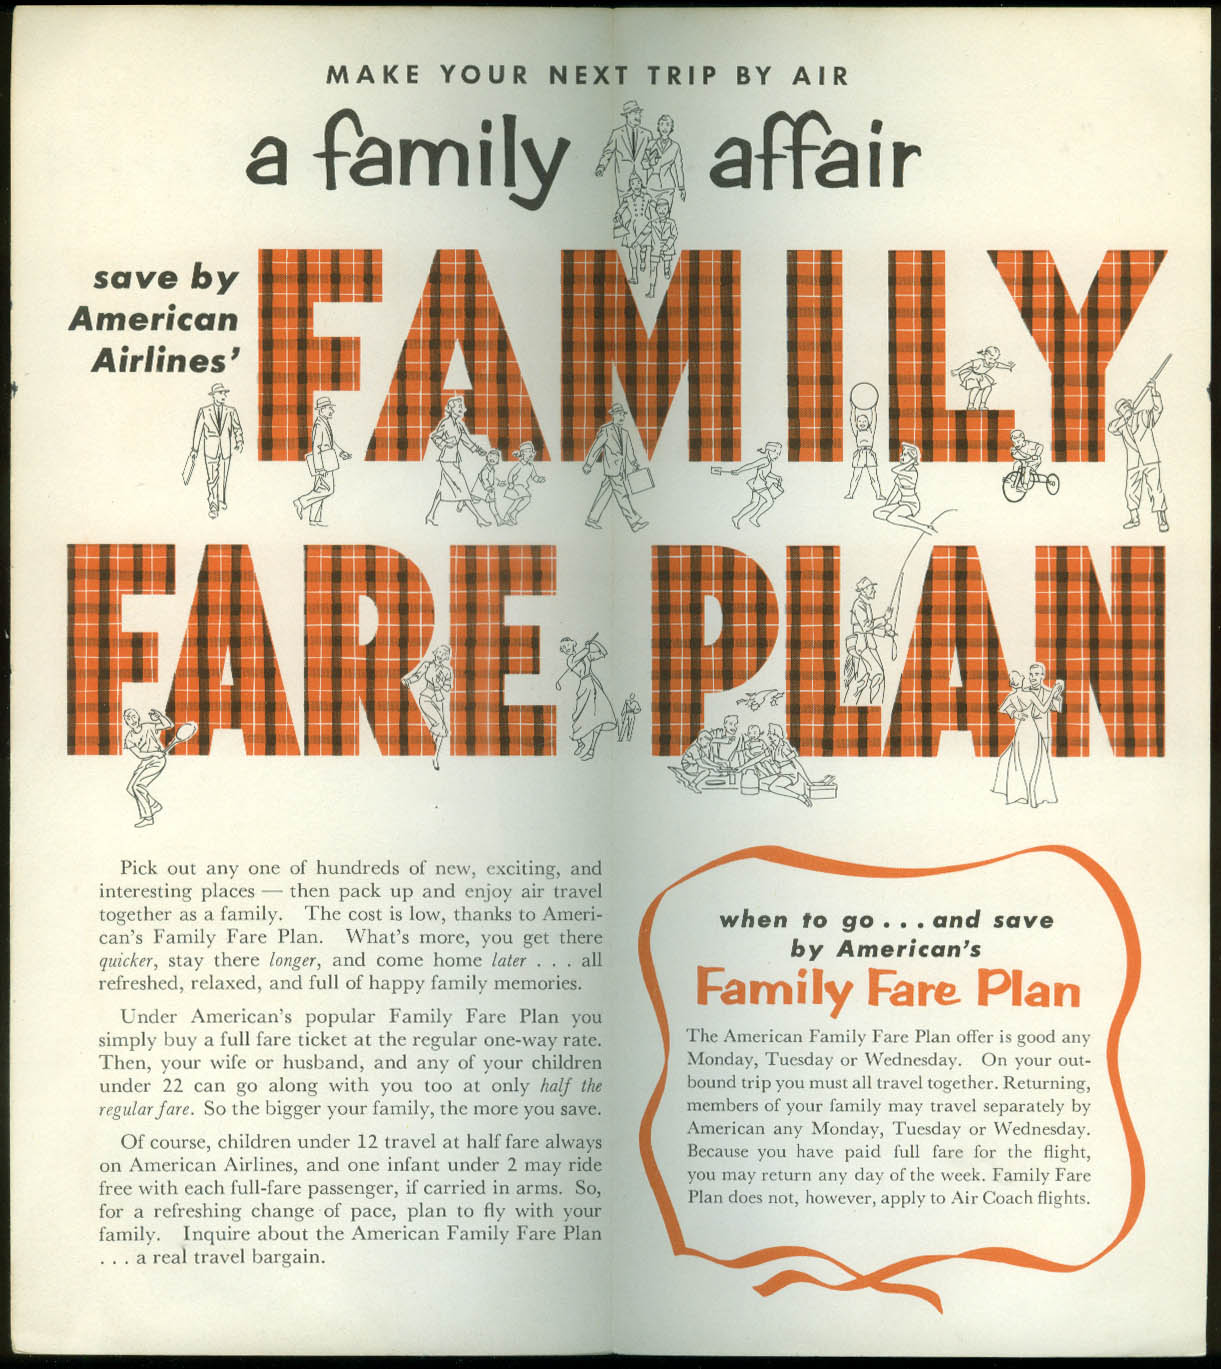 American Airlines Be Thrifty Family Fare Plan airline folder 1955